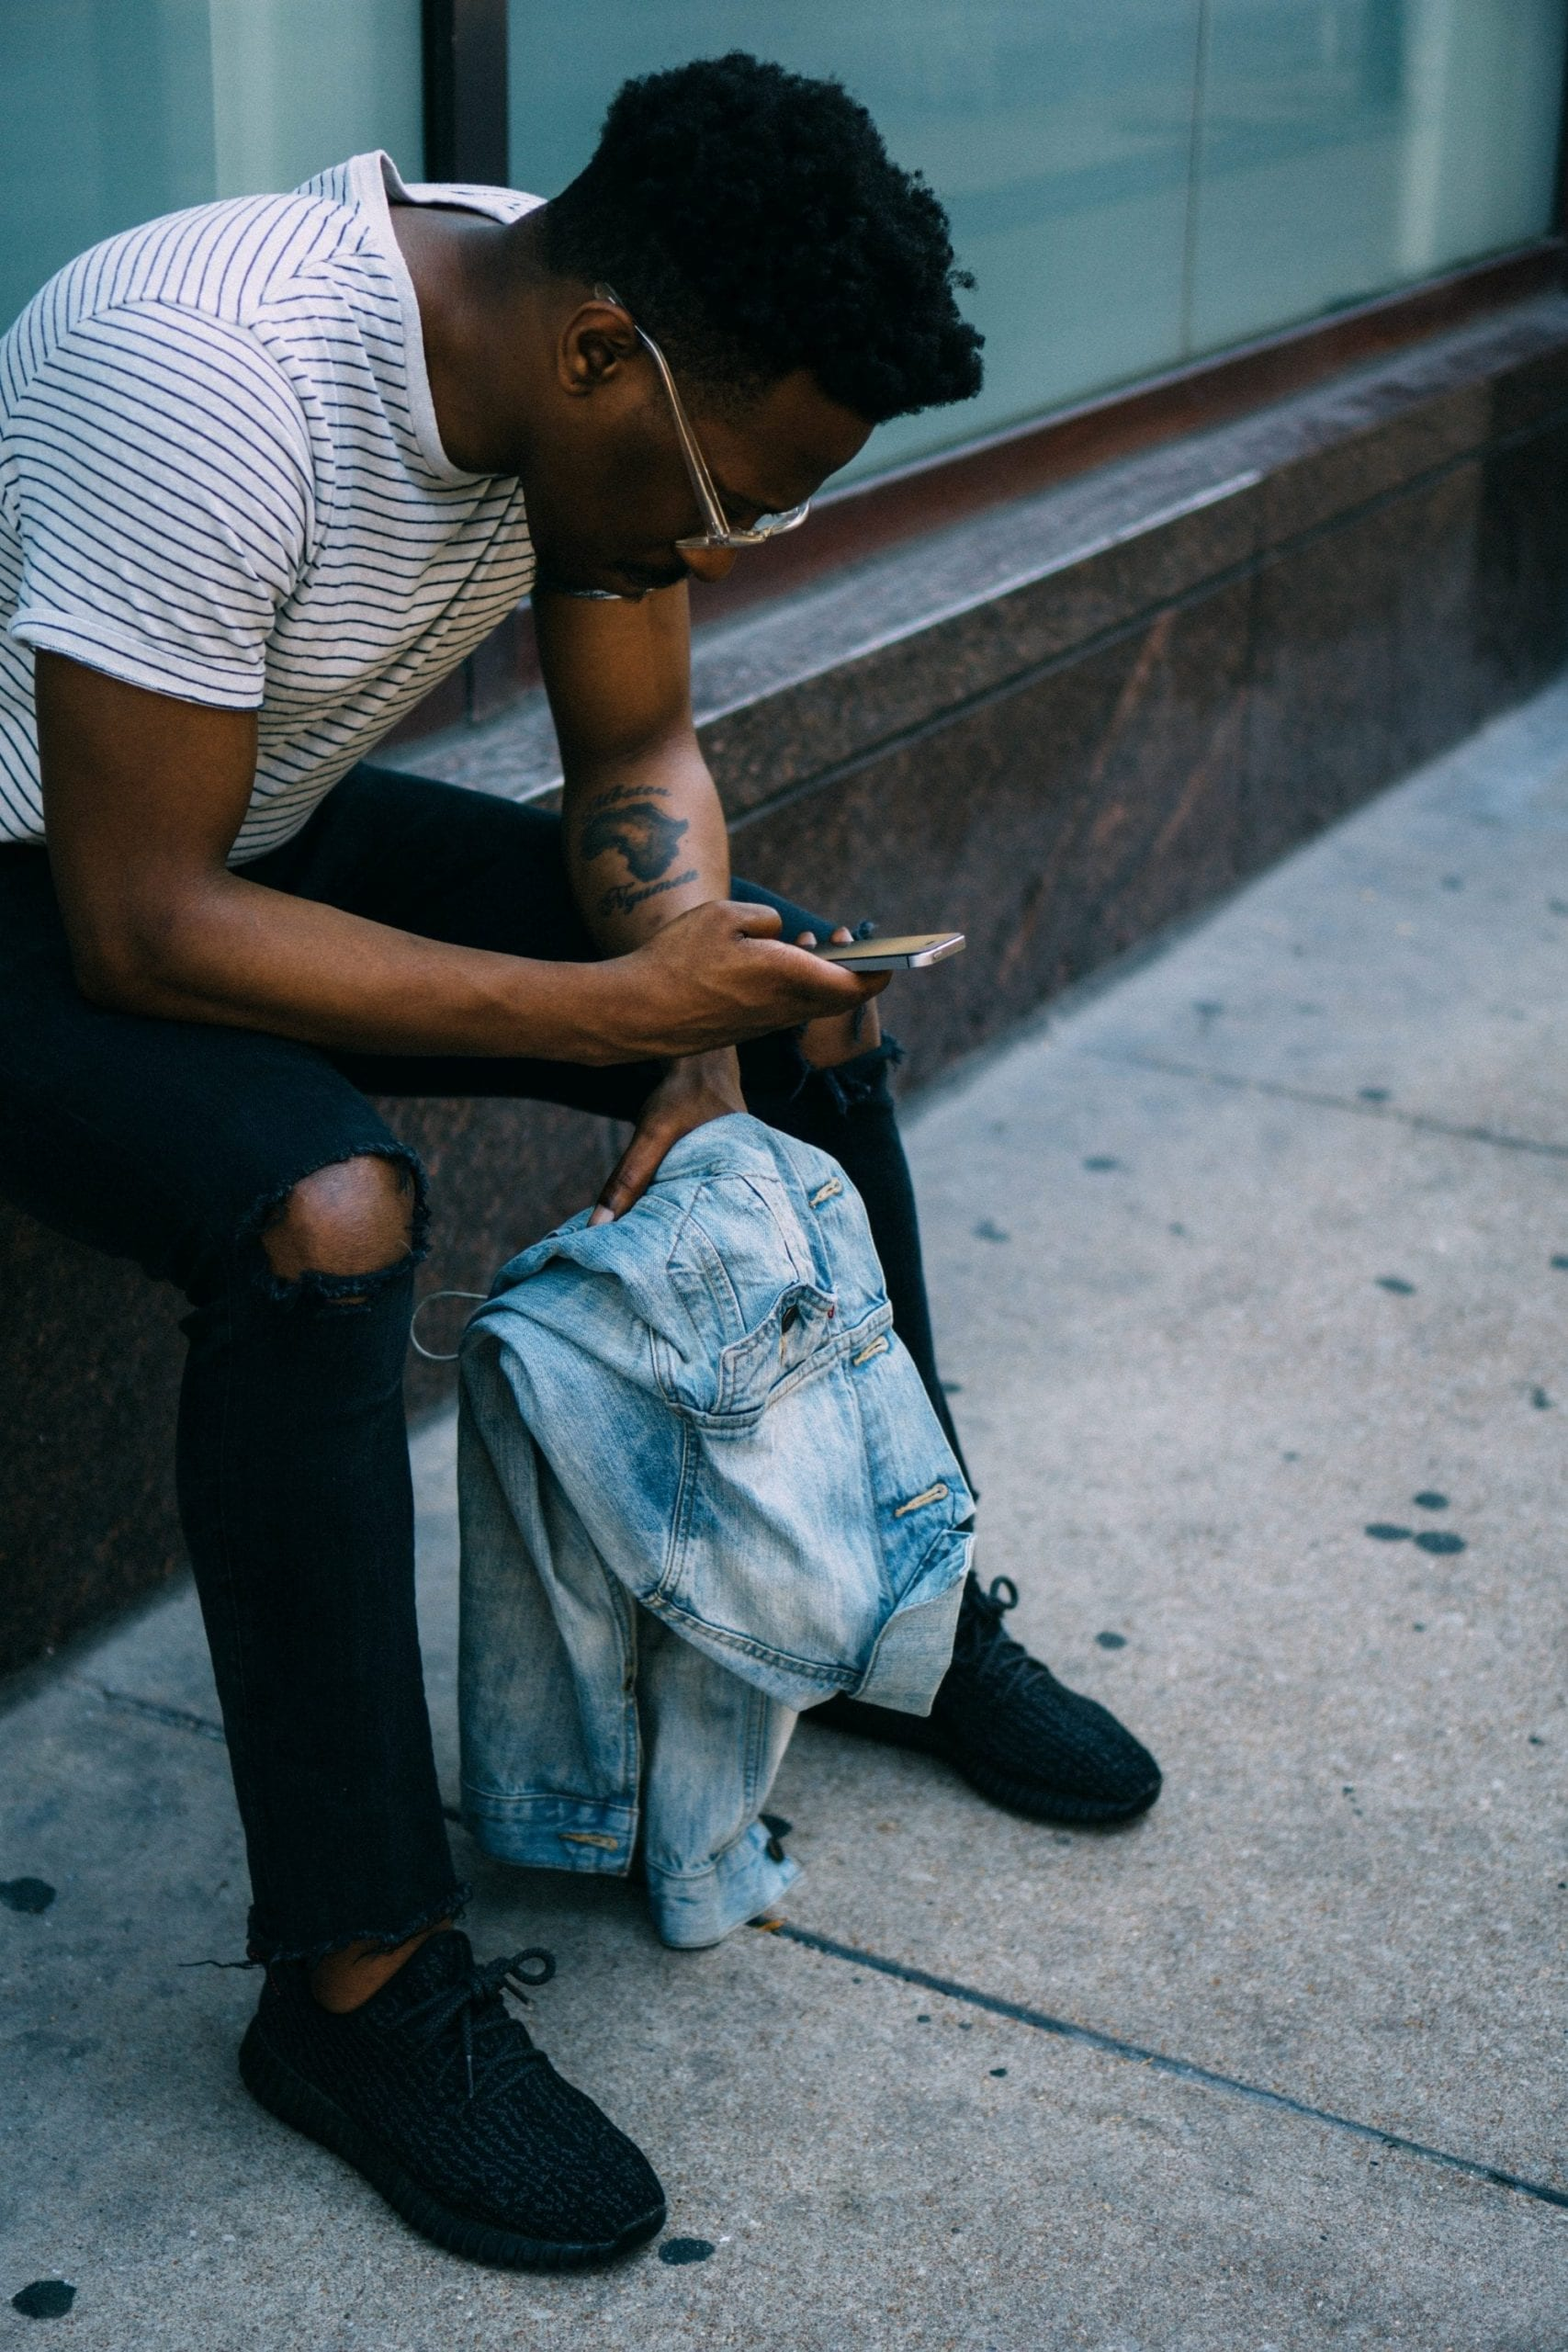 Sitting looking at phone - unsplash.com